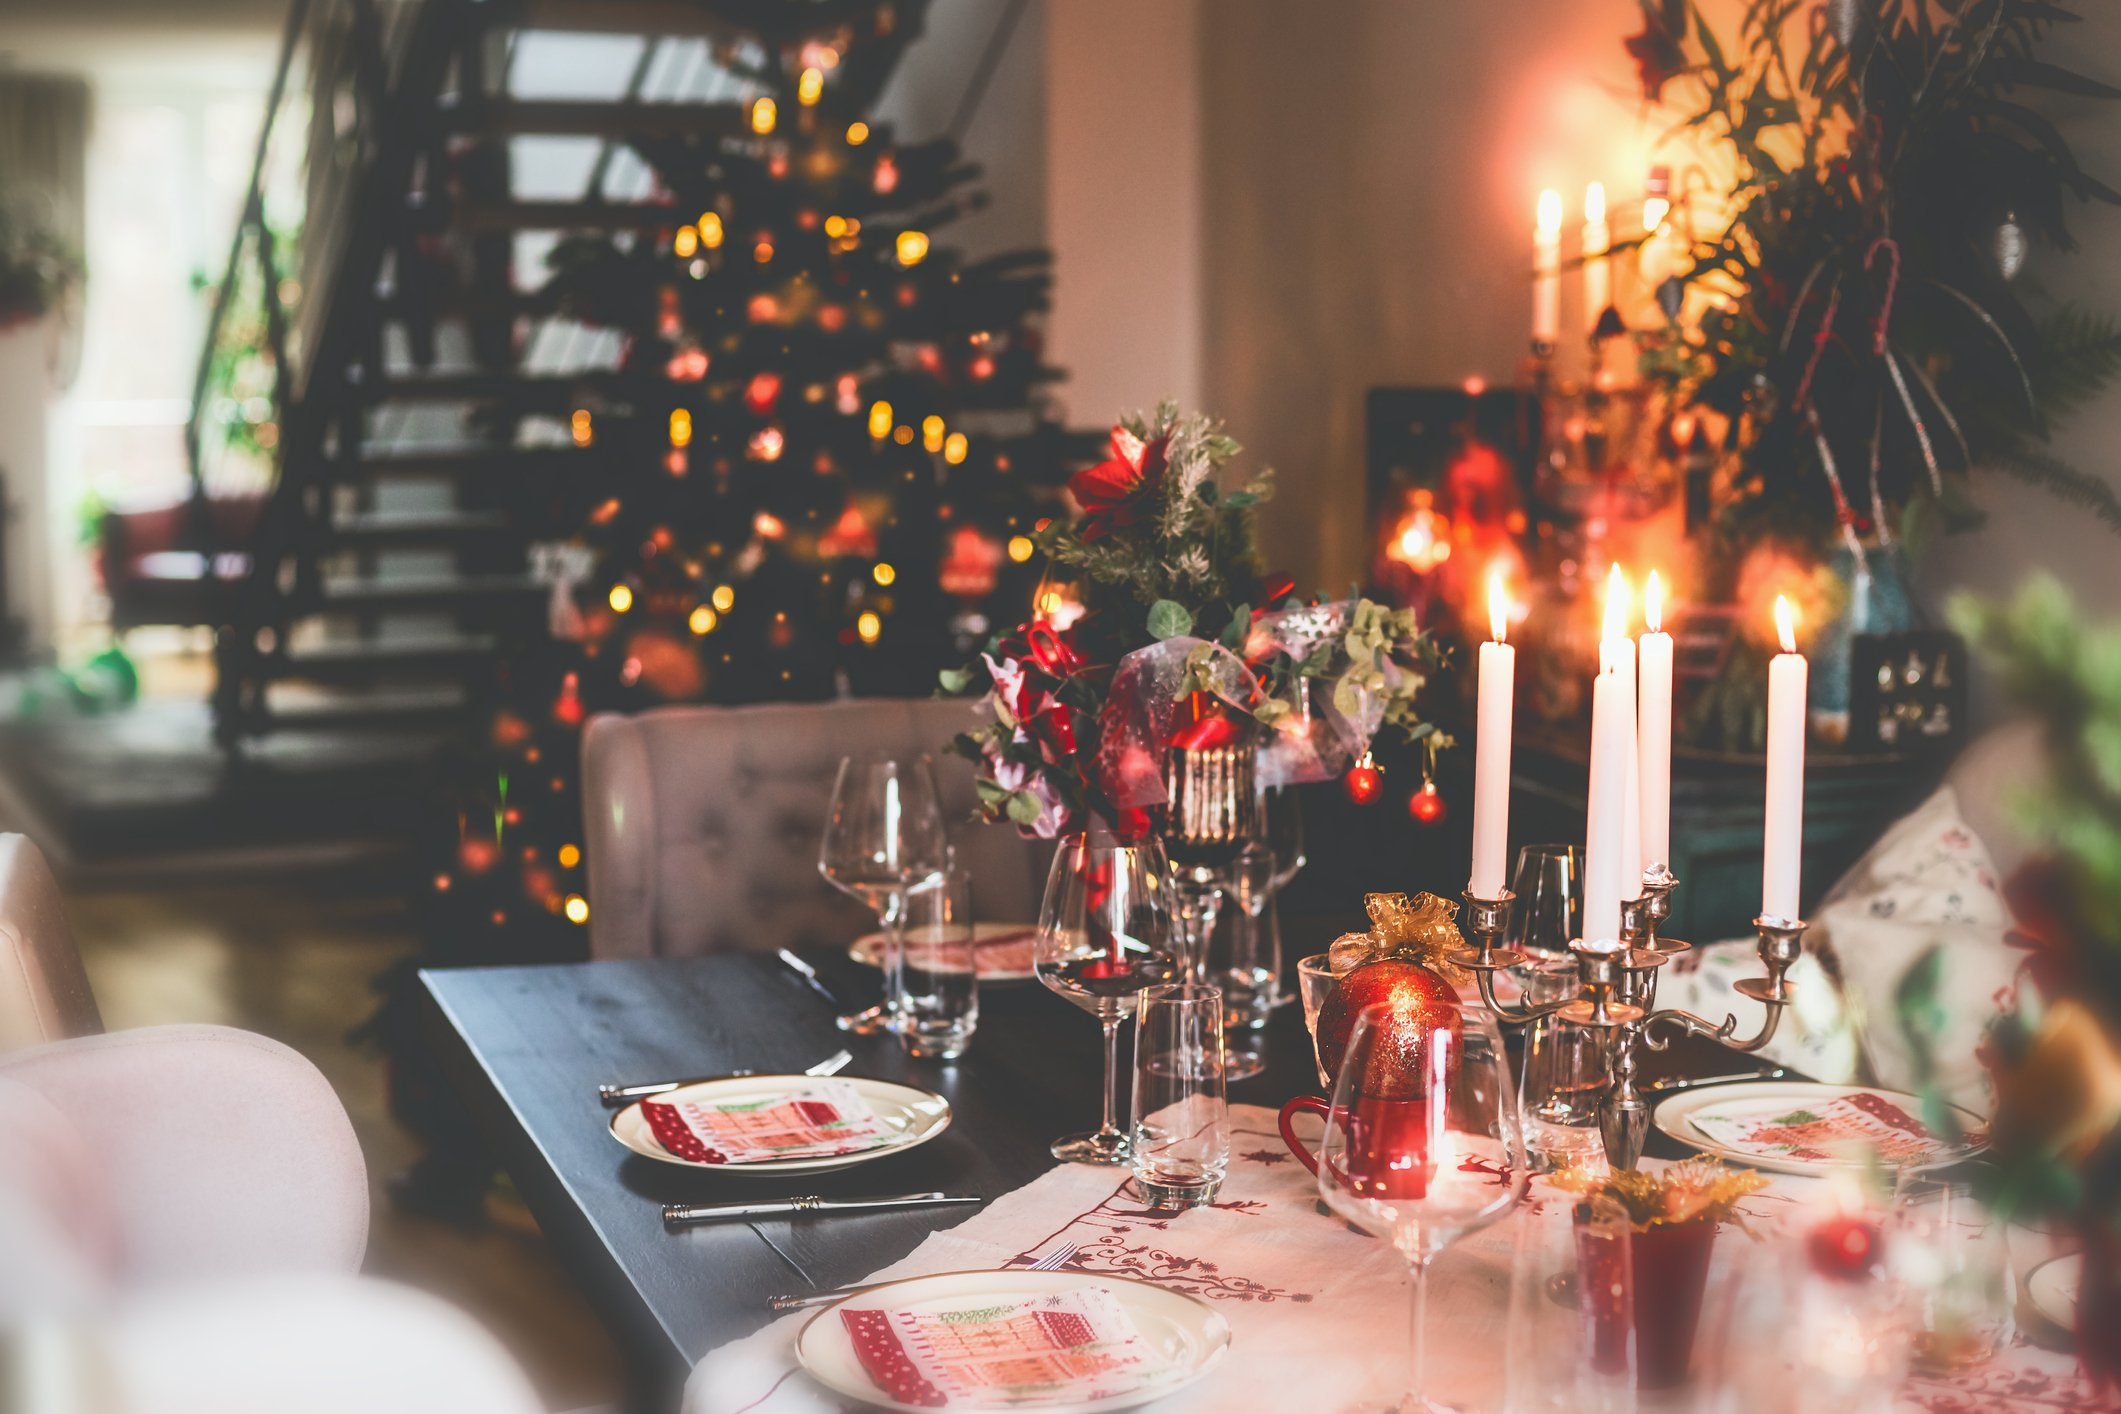 A picture of Christmas dinner table in a cozy room. | Photo: Getty Images